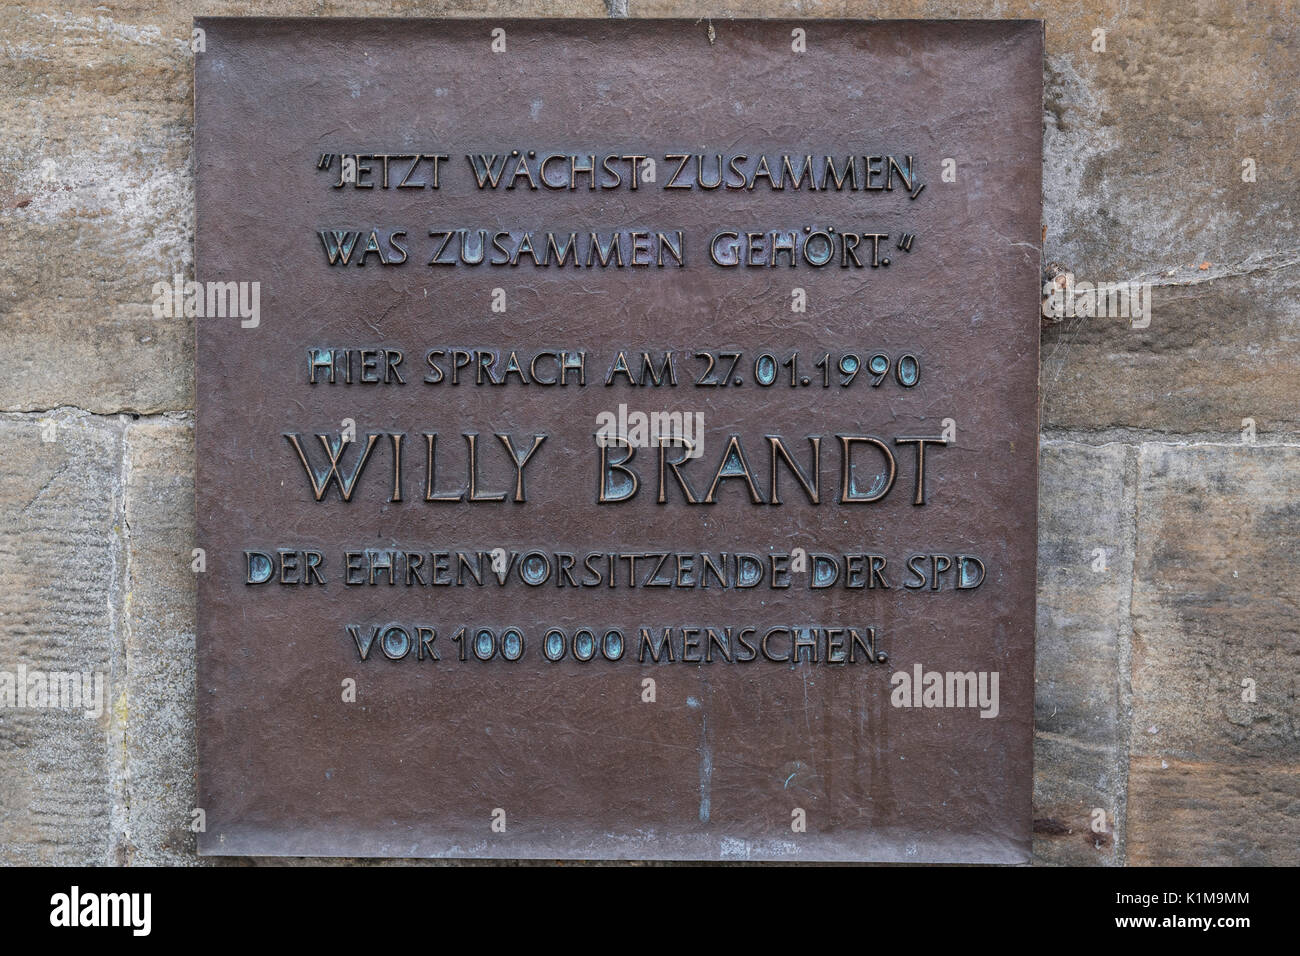 Memorial plaque for the visit of Willy Brandt at the main market, Gotha, Thuringia, Germany Stock Photo